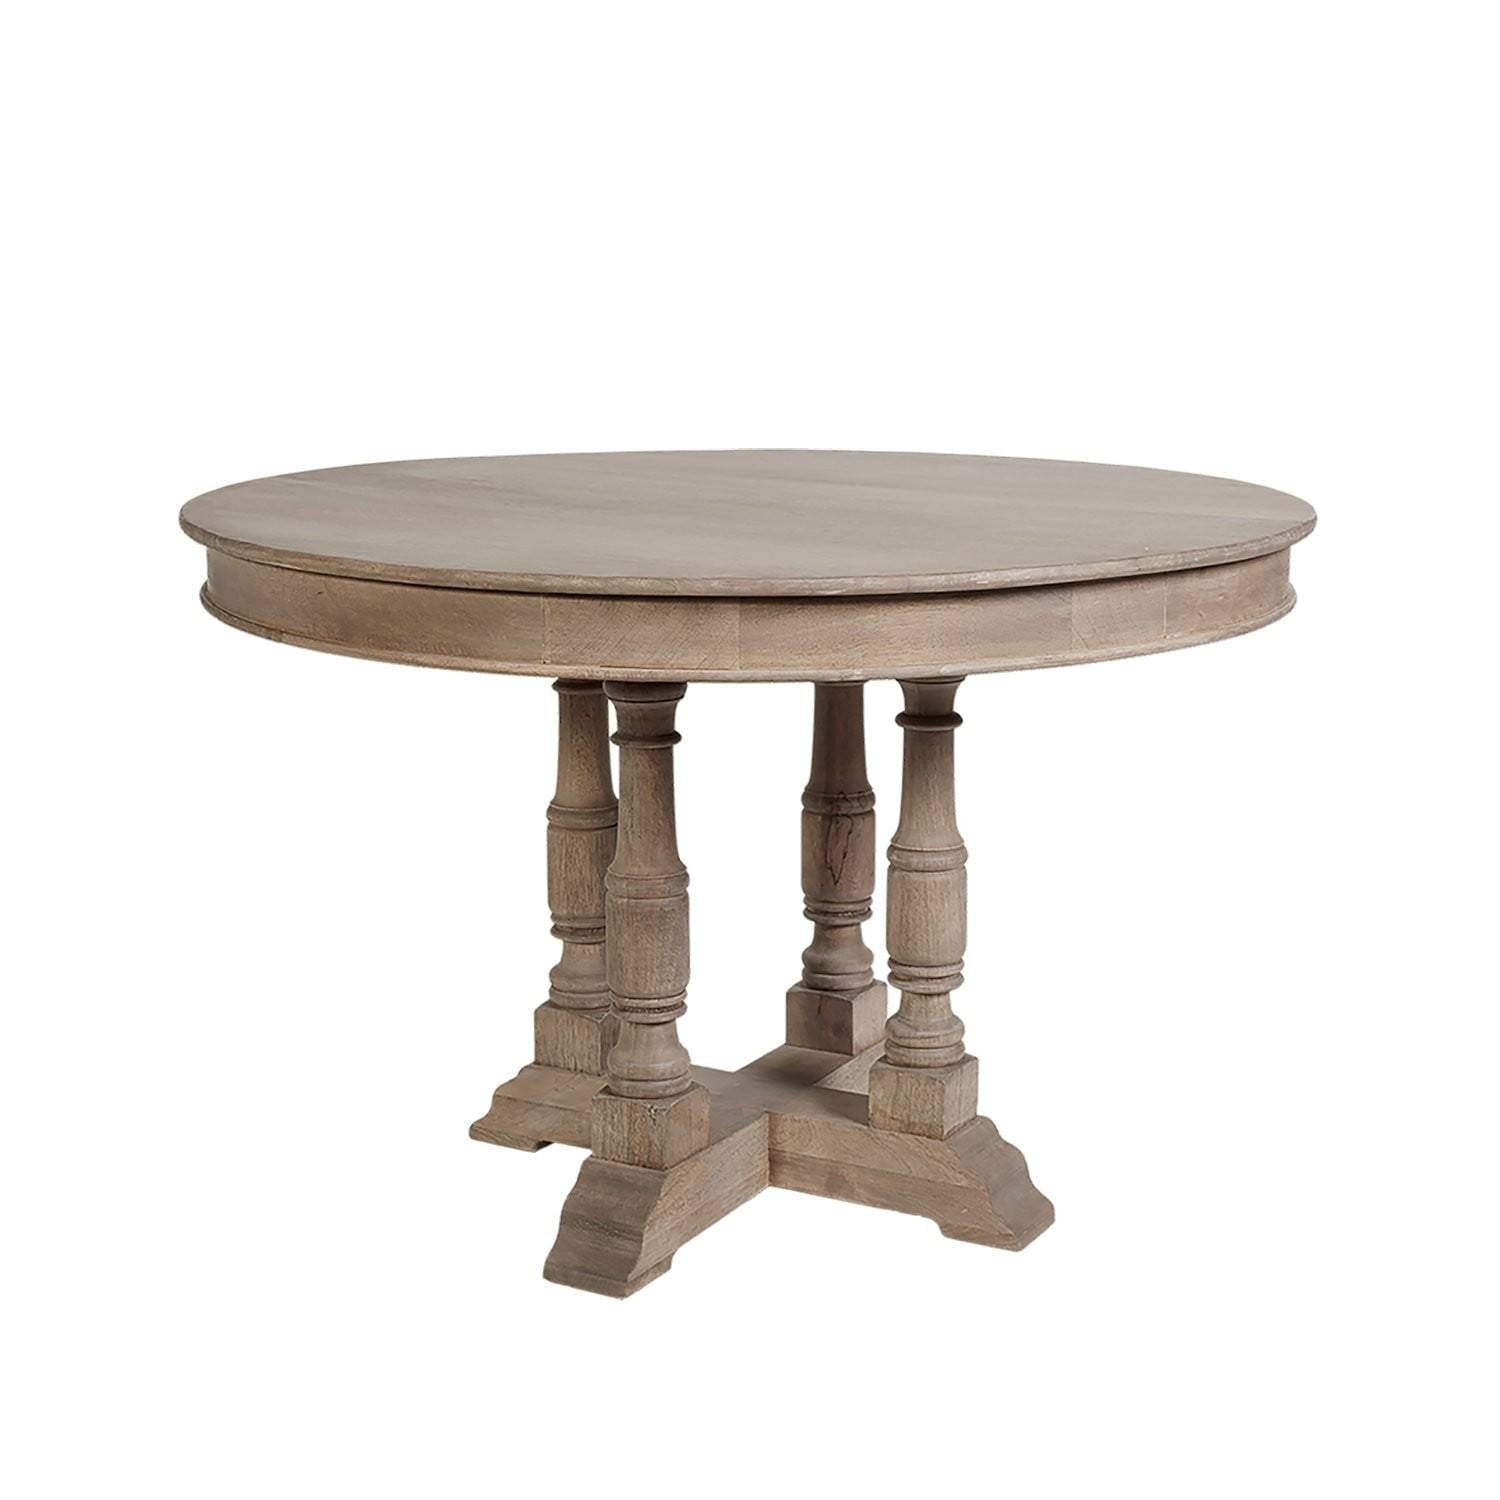 Maine French Classic Round Dining Table | Luxury Furniture